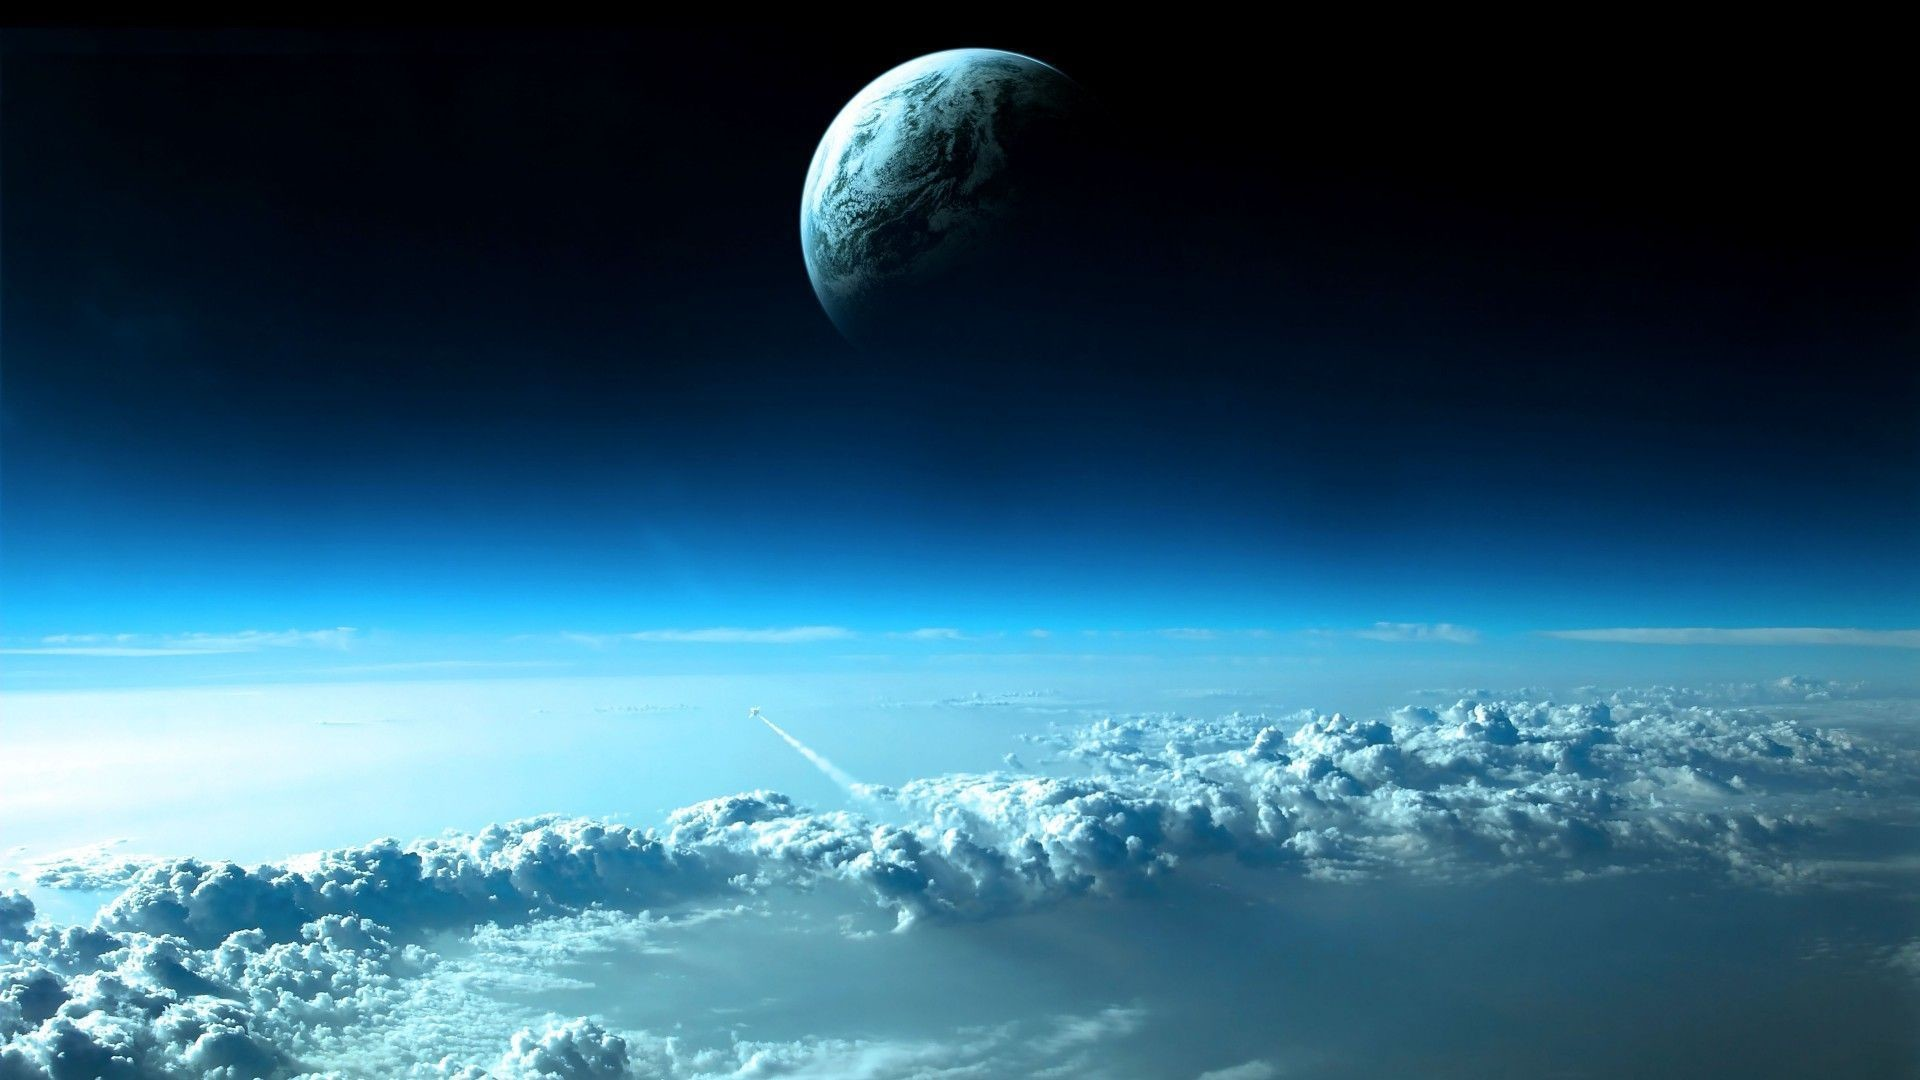 Space HD Wallpapers 1080p – Wallpaper Cave